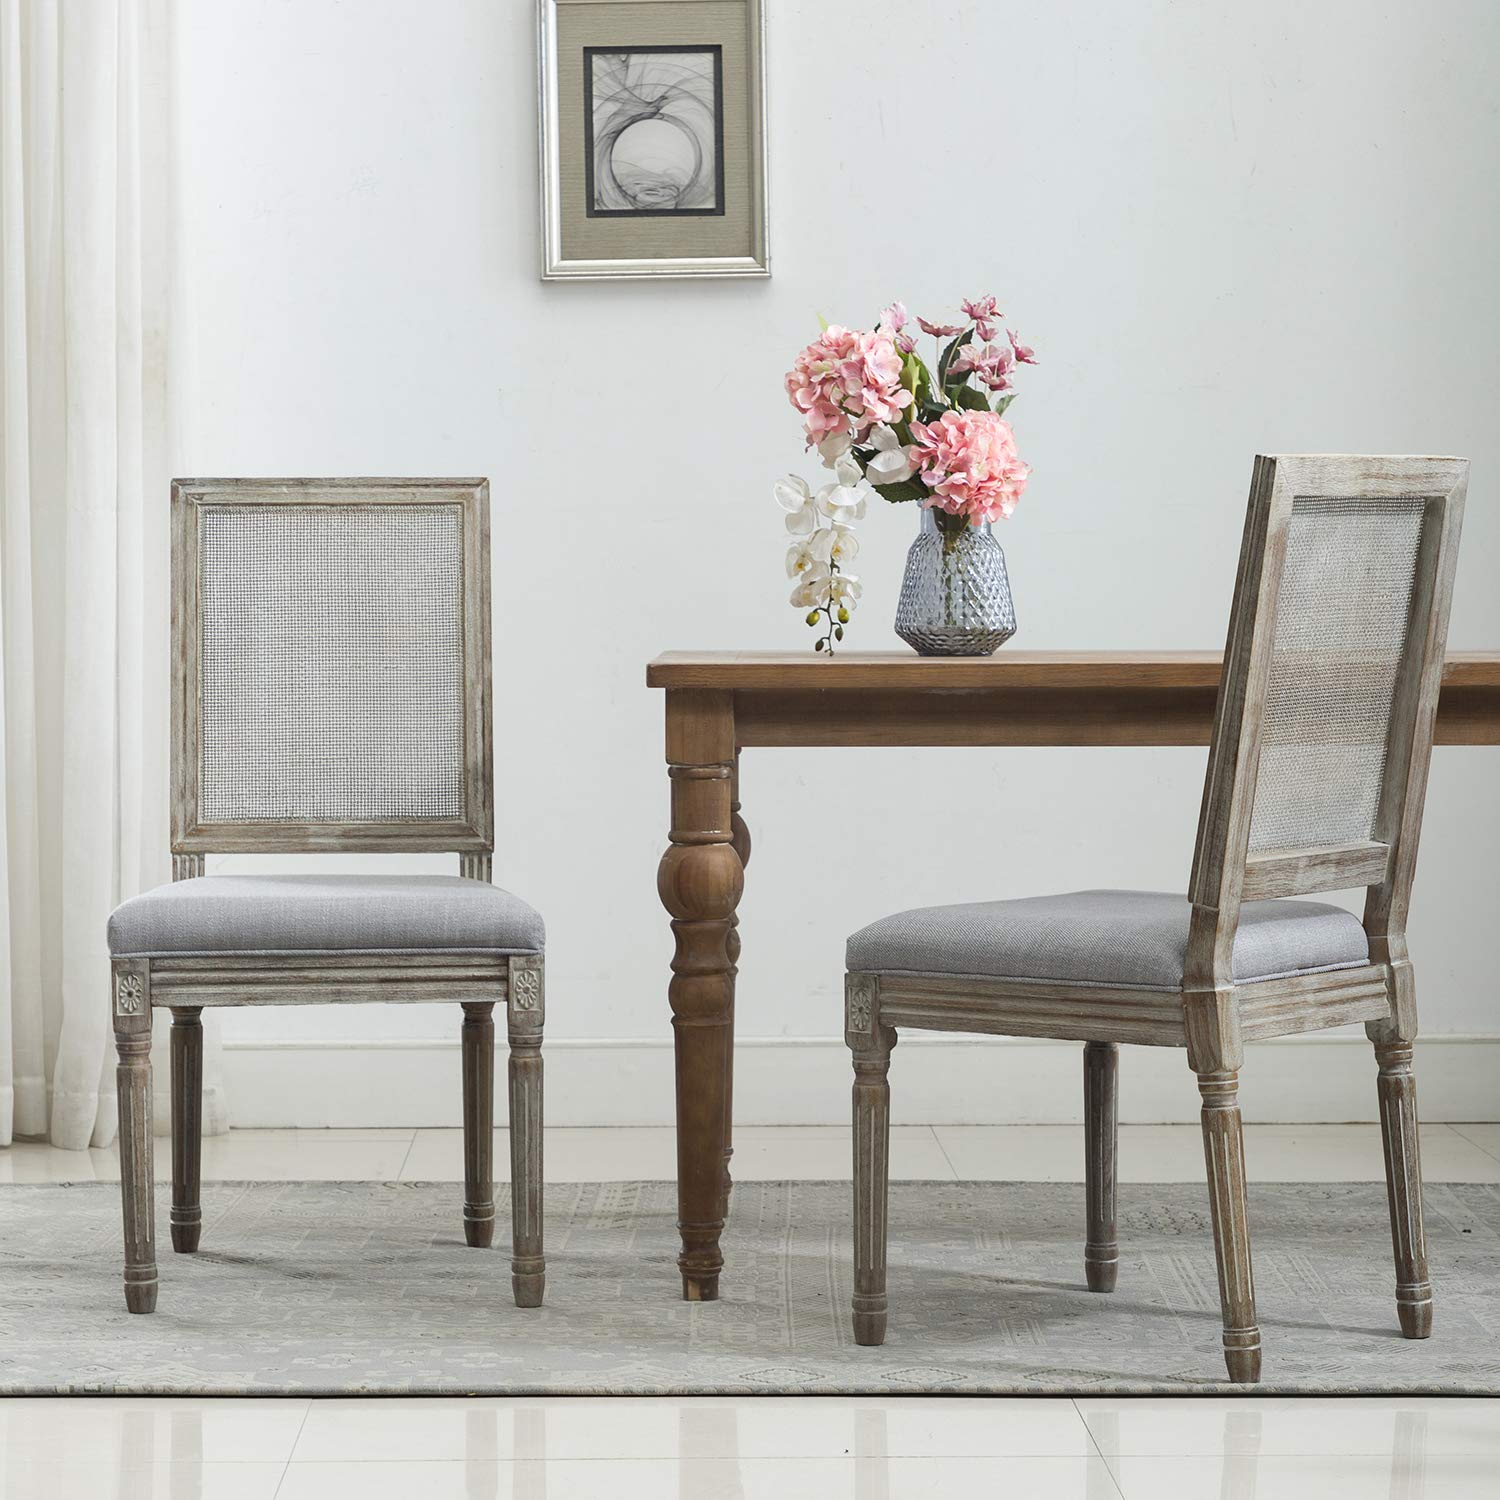 chairus French Dining Chairs, Distressed Elegant Tufted Kitchen Chairs with Rectangle Fine Rattan Back - Set of 2 - Beige Gray